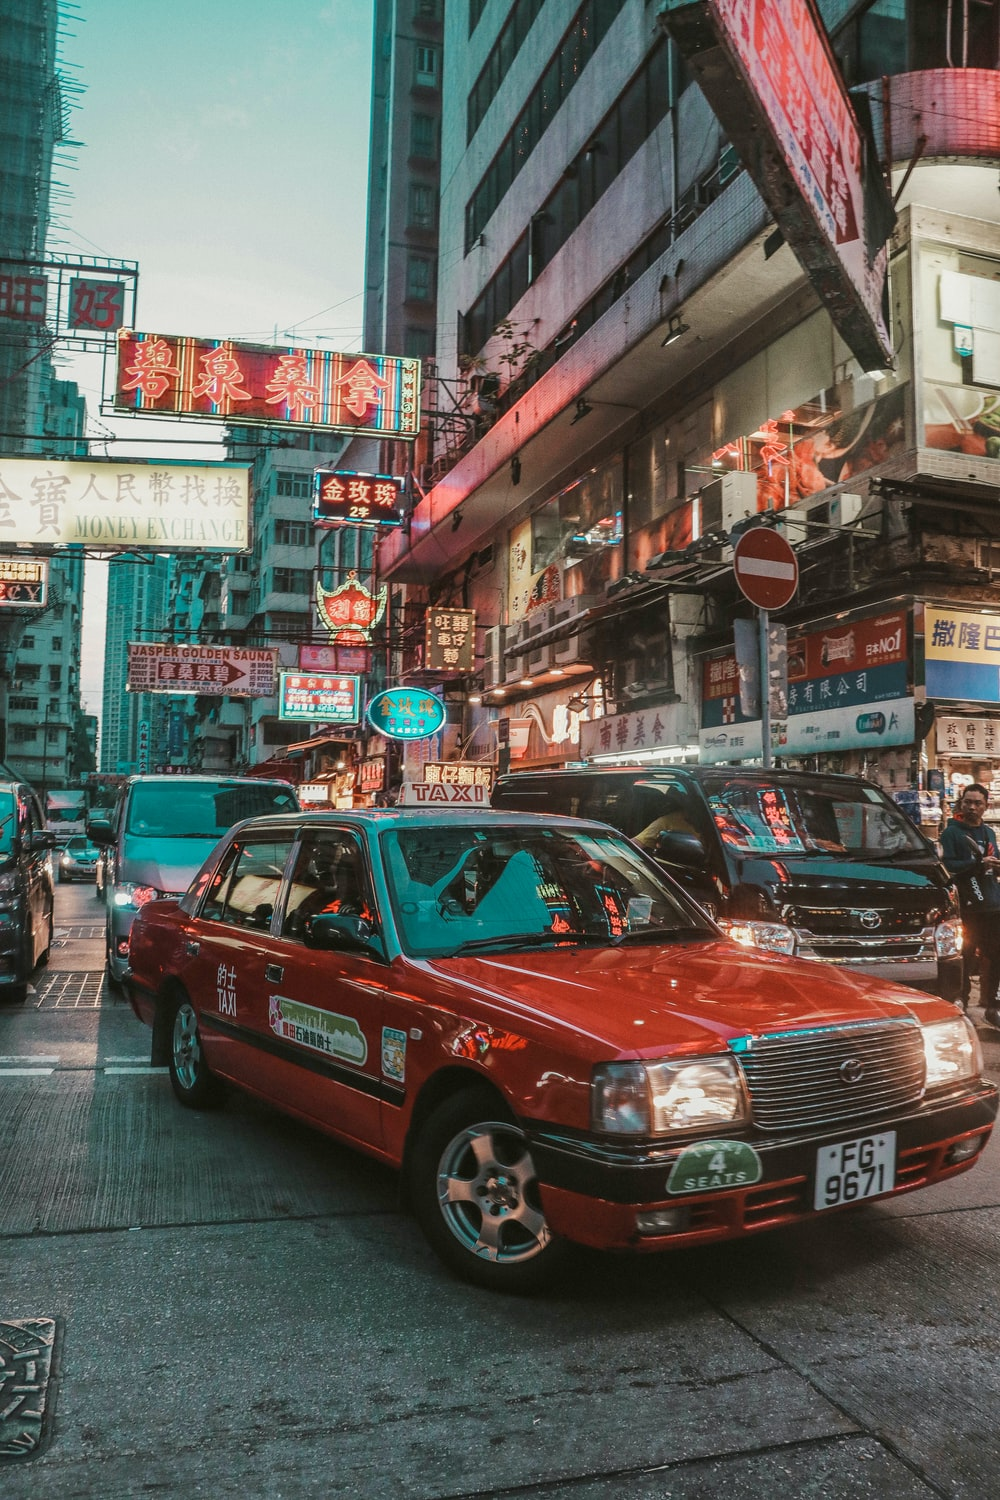 red taxi cab on Hong Kong street